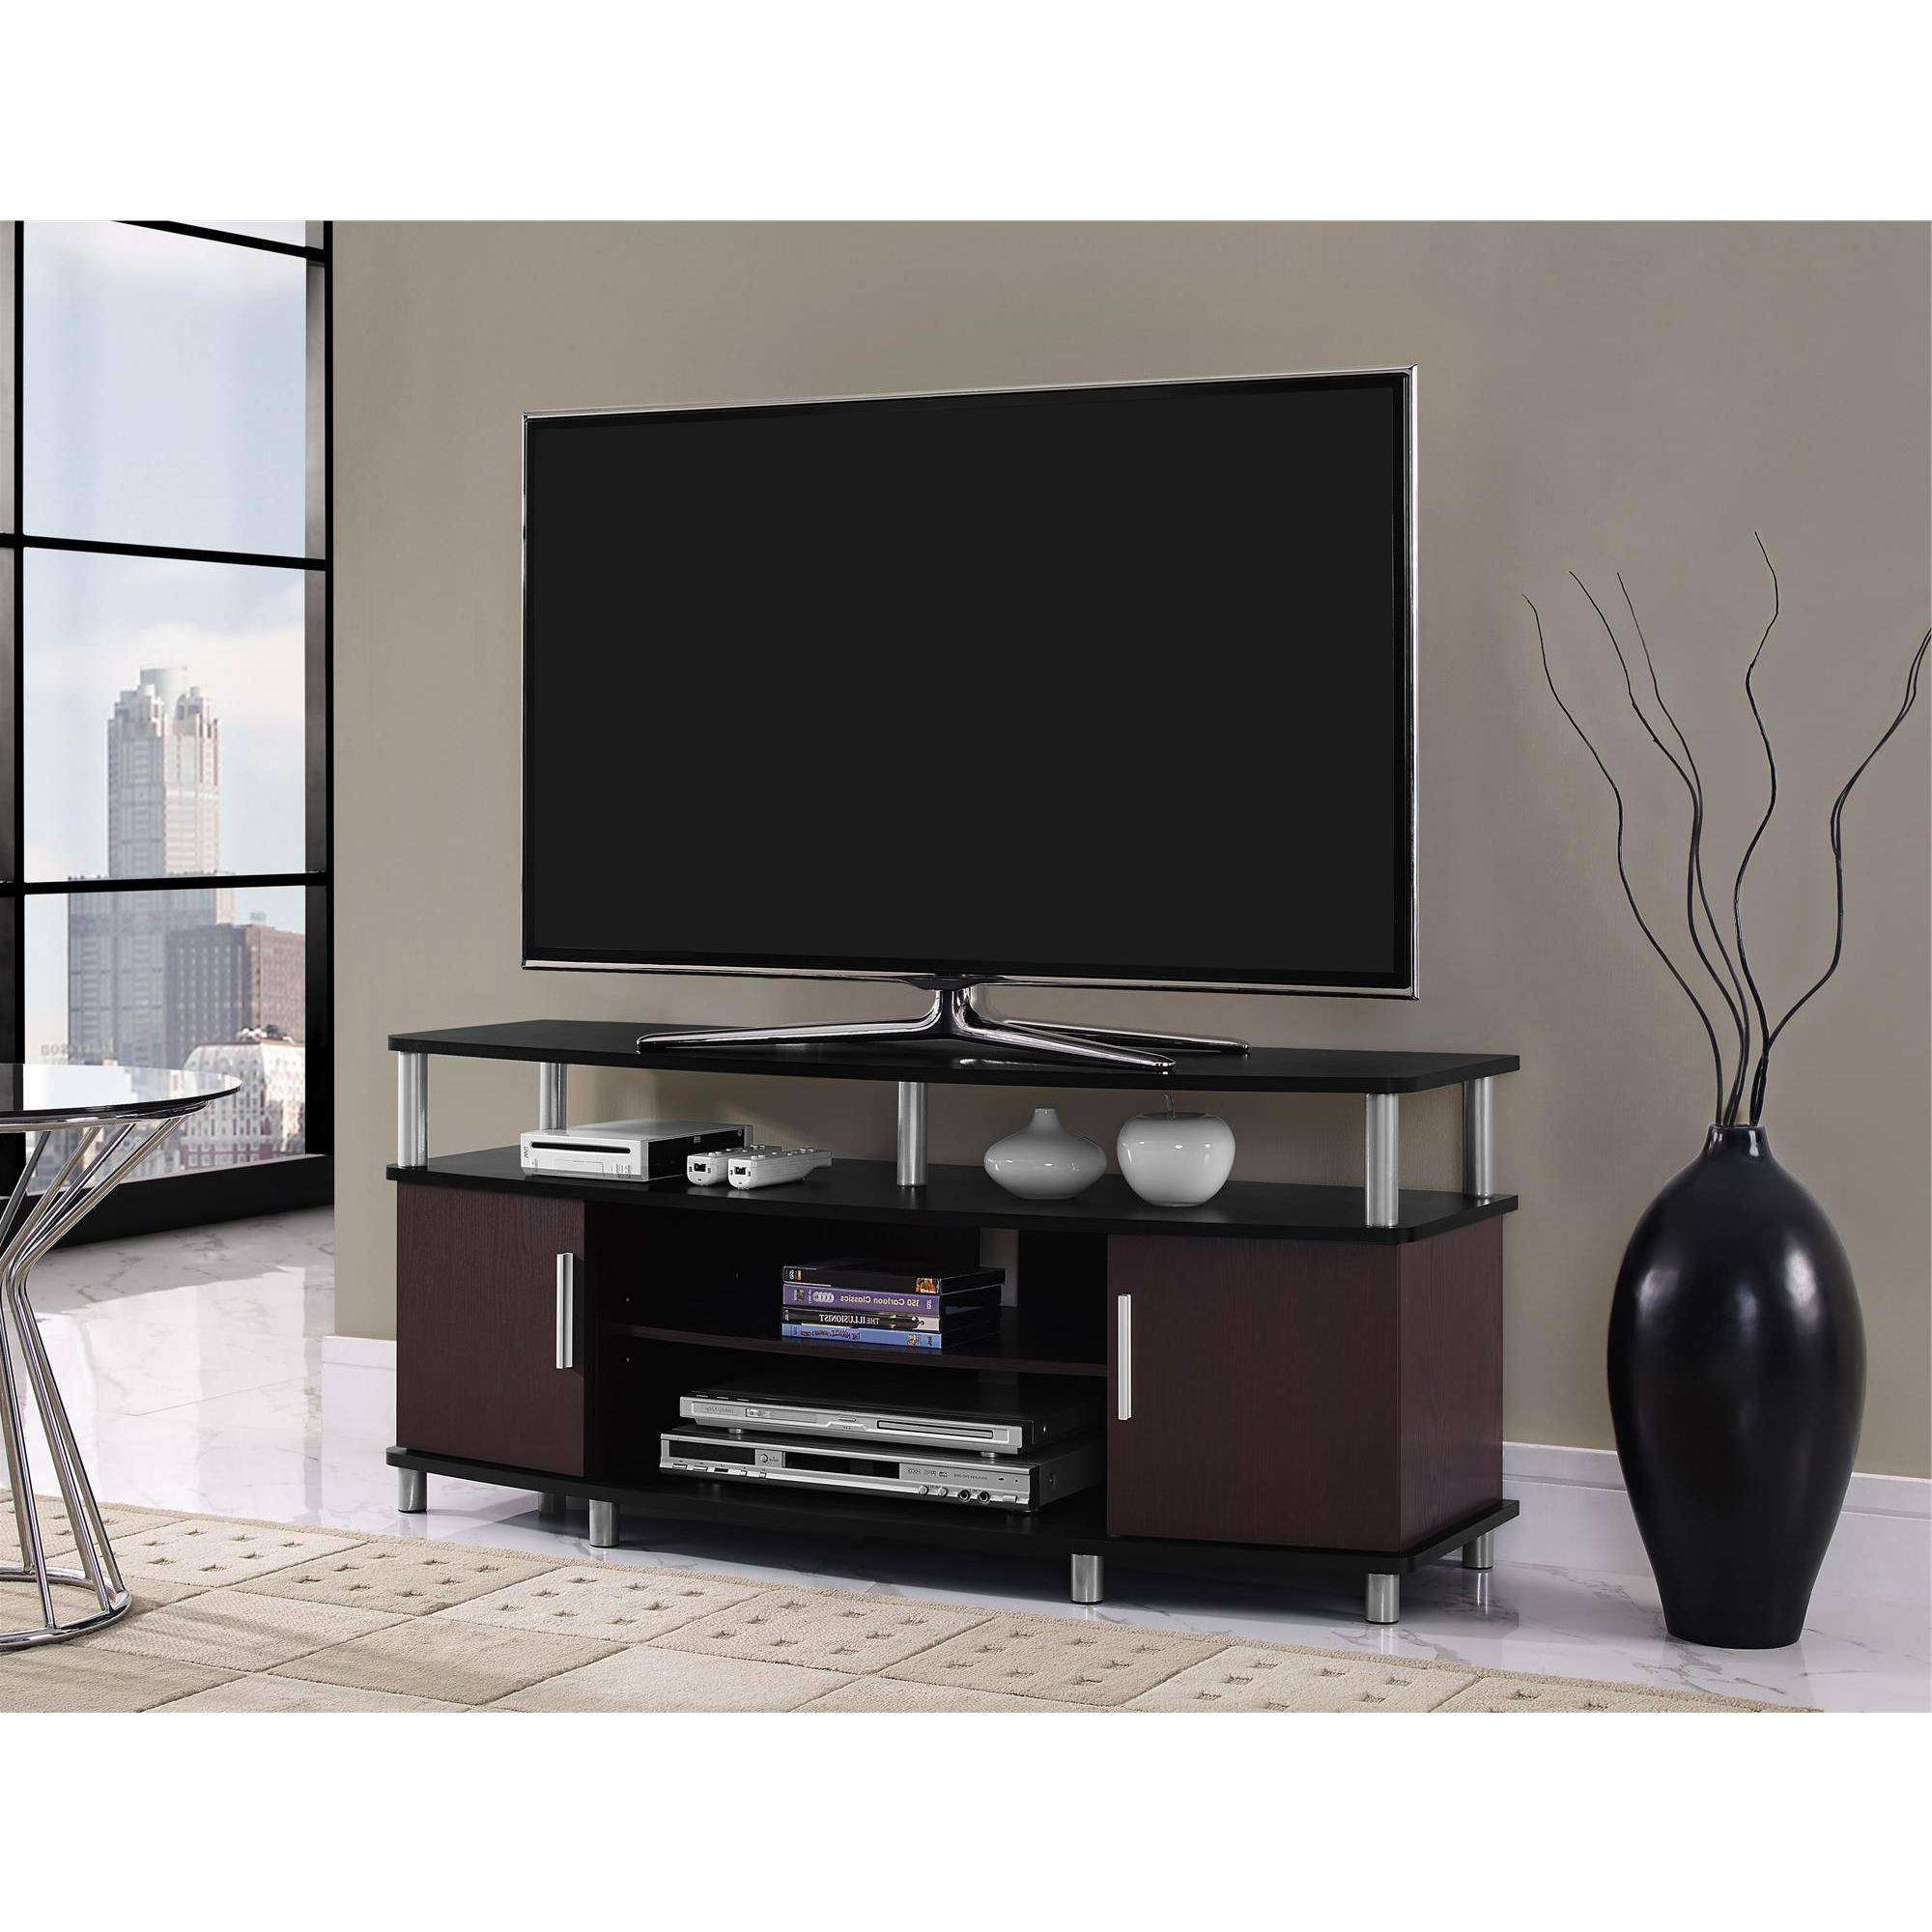 Fancy Tv Stands For 40 Inch Tv 80 In Home Decoration Ideas With Tv Intended For Fancy Tv Stands (View 5 of 15)